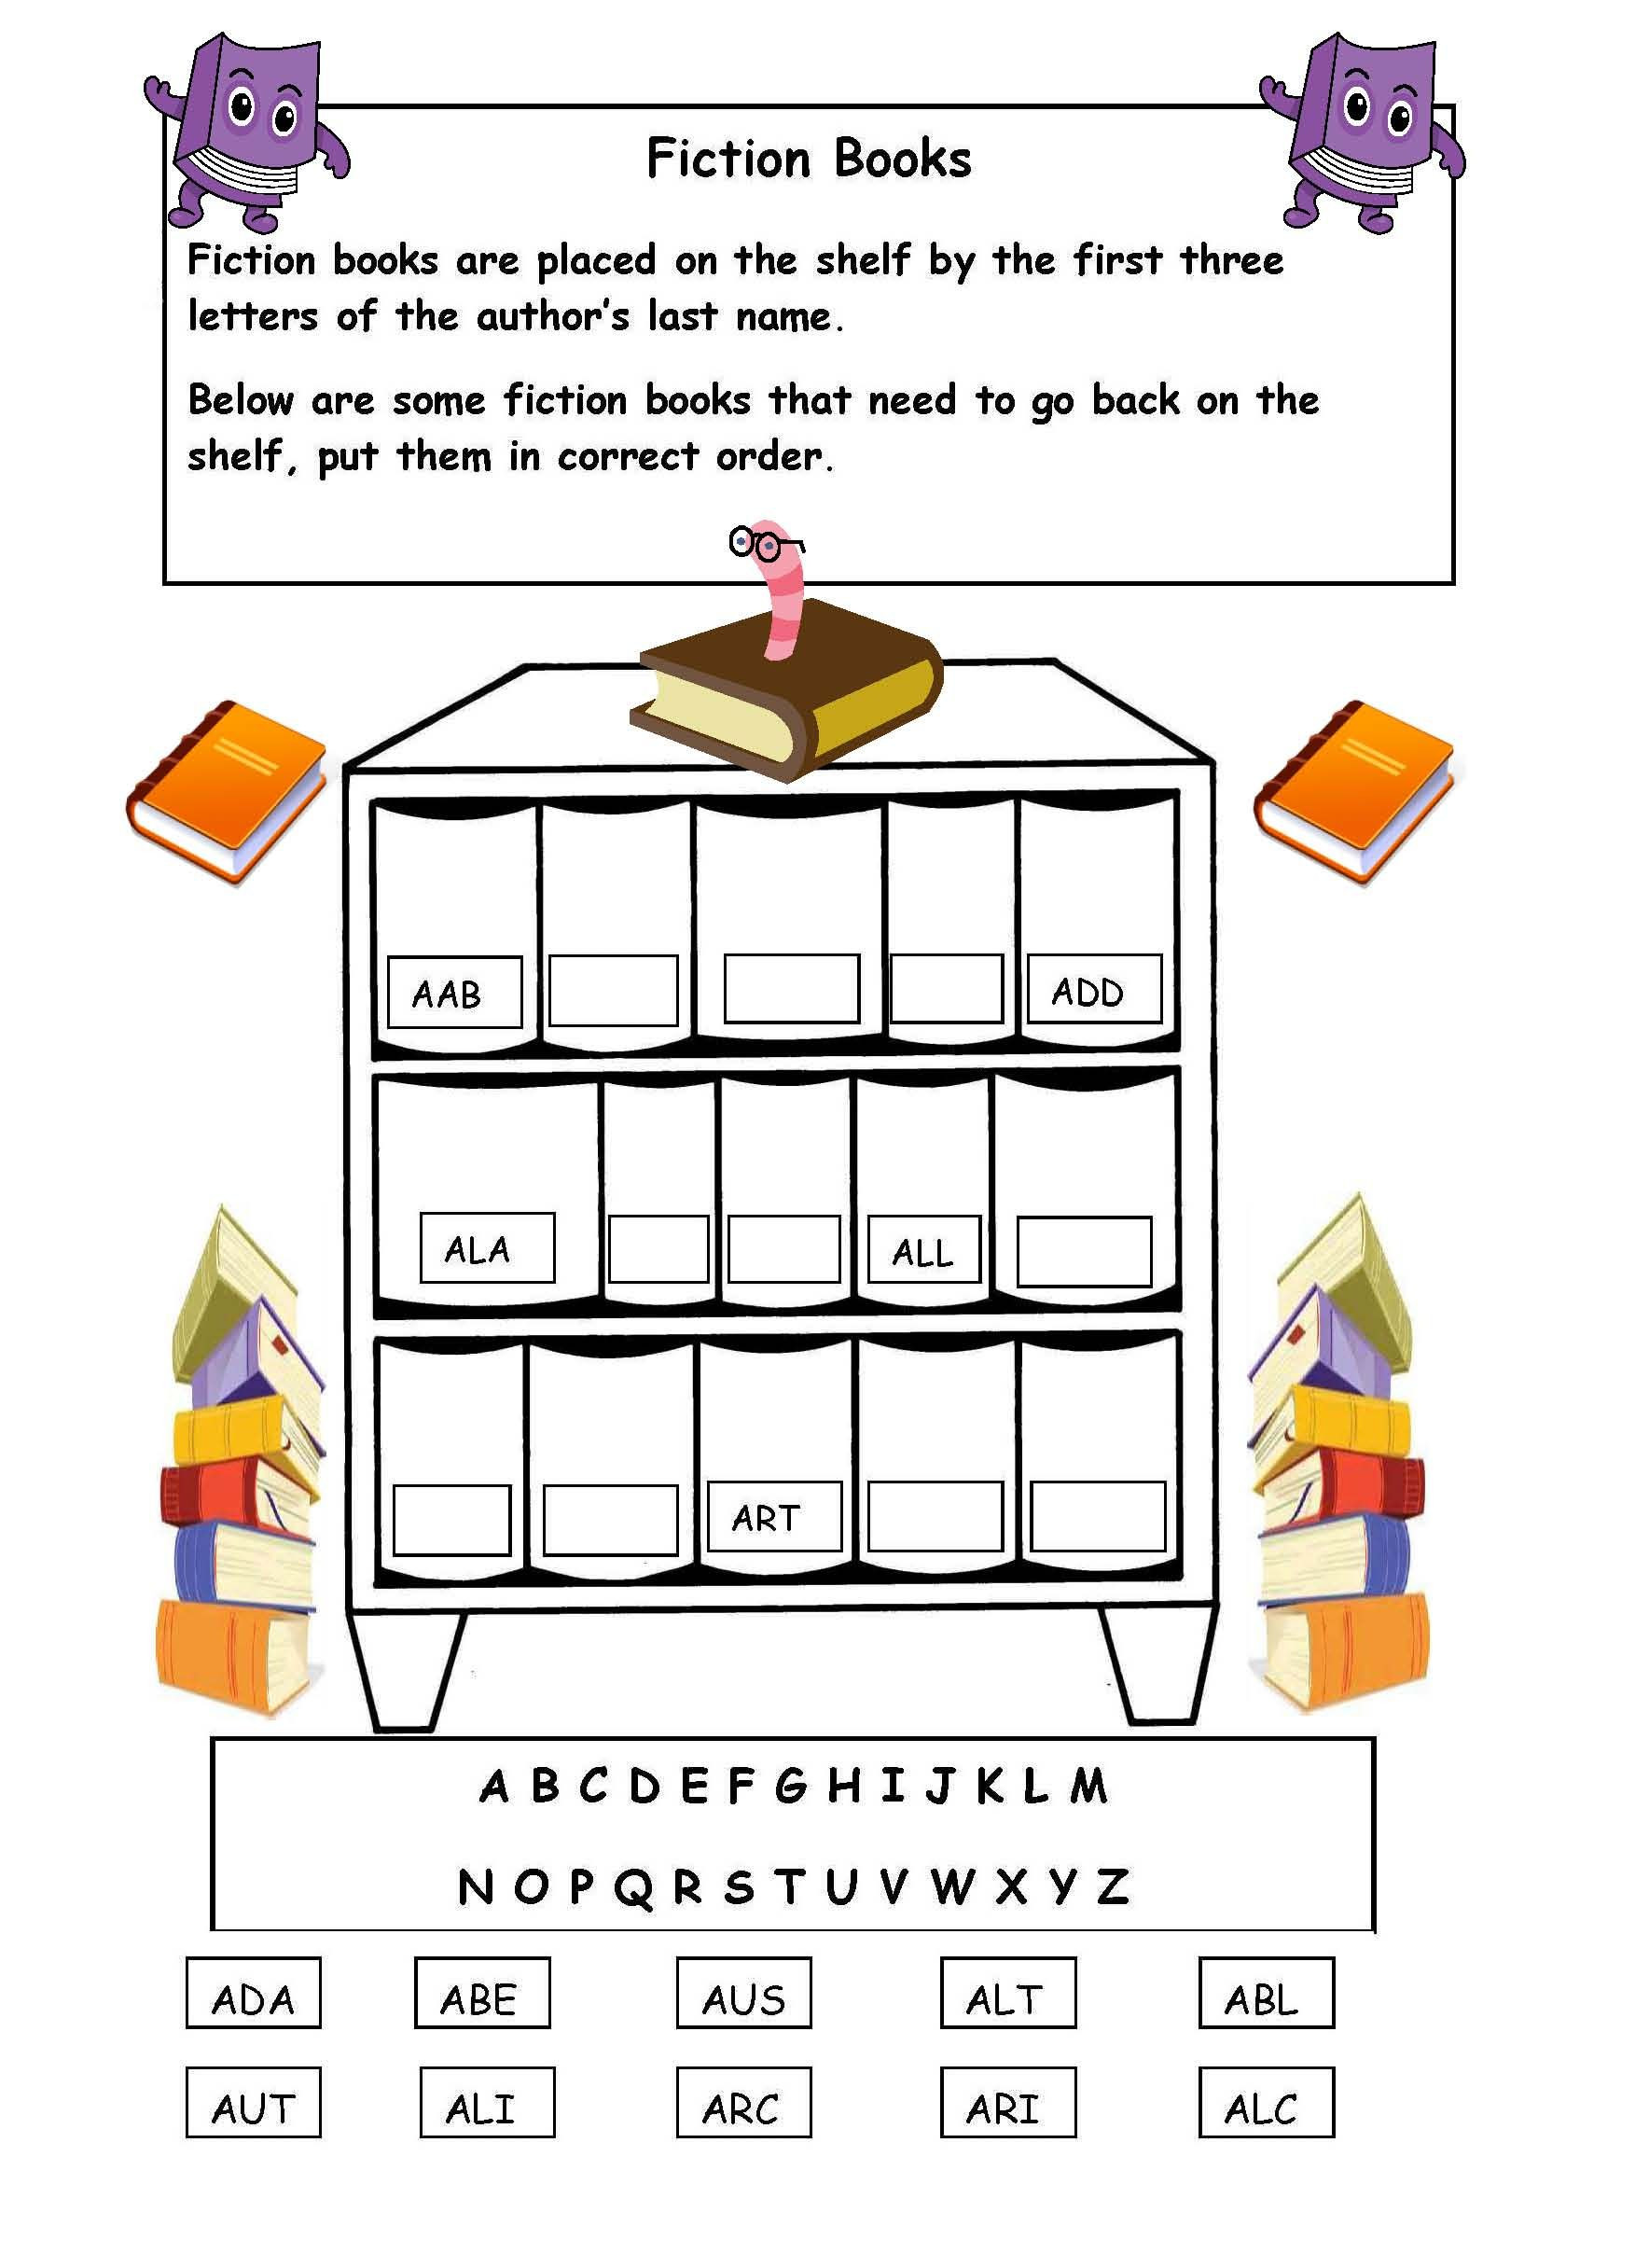 Alphabetical order Worksheets 2nd Grade Alphabetical order the Shelf Worksheet Library Skills